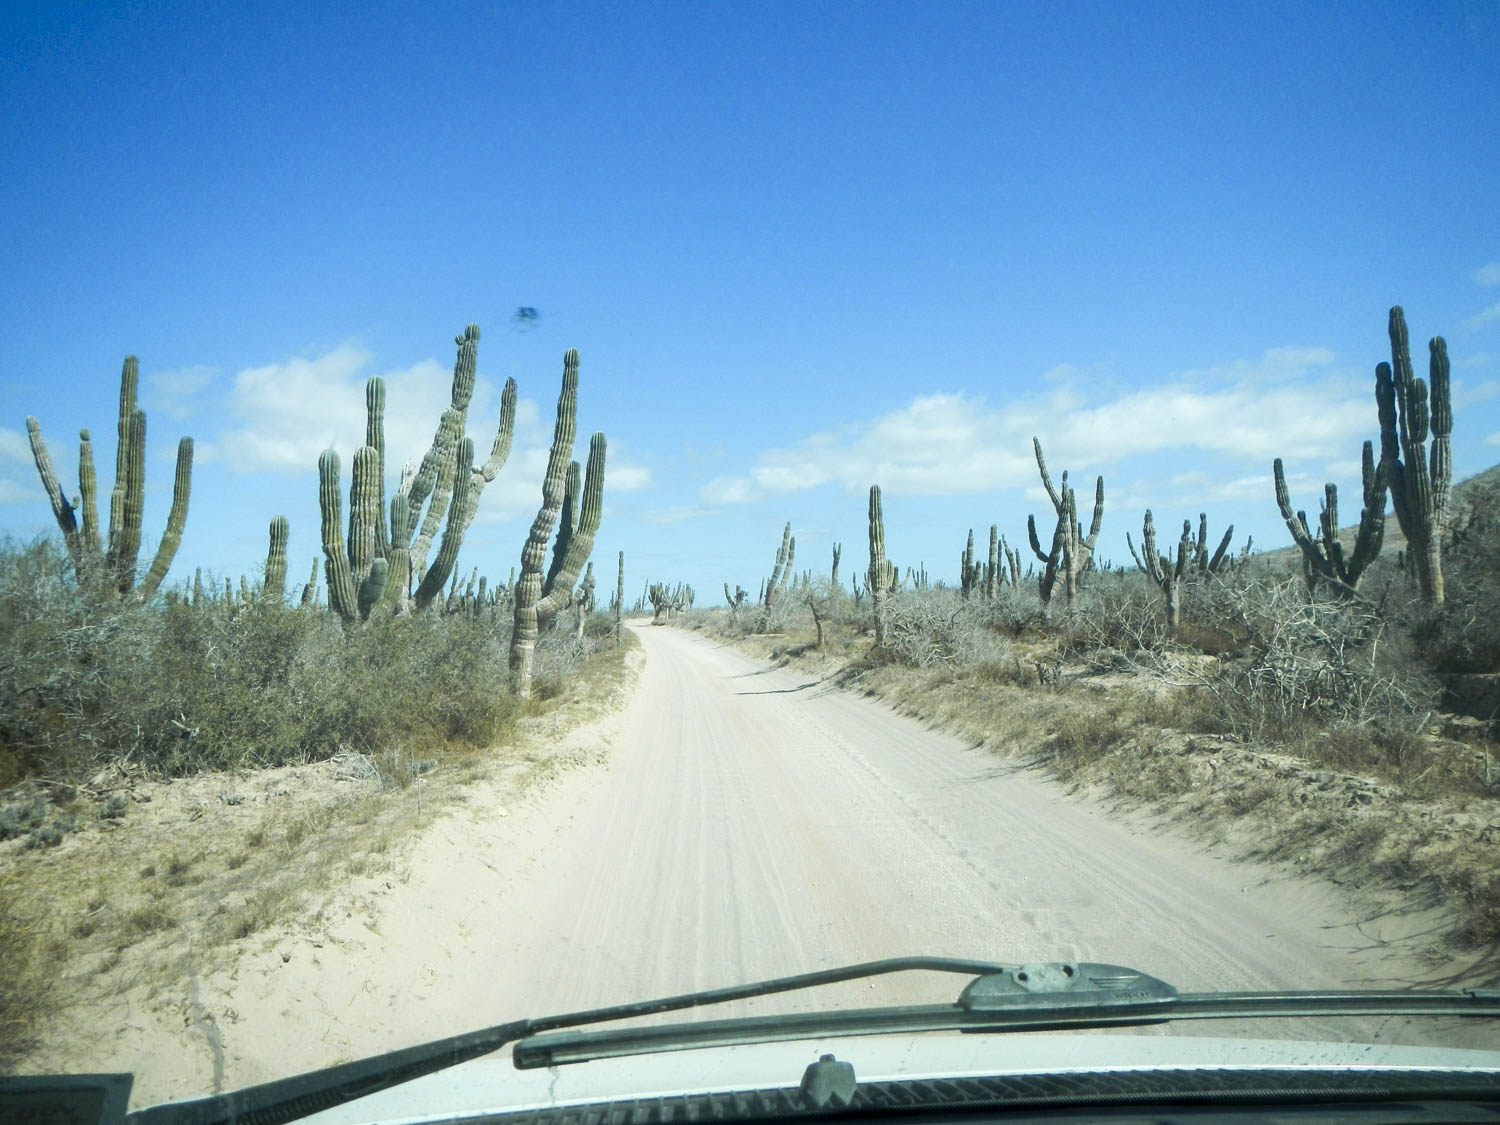 Baja California, desolate roads forever. Mexico